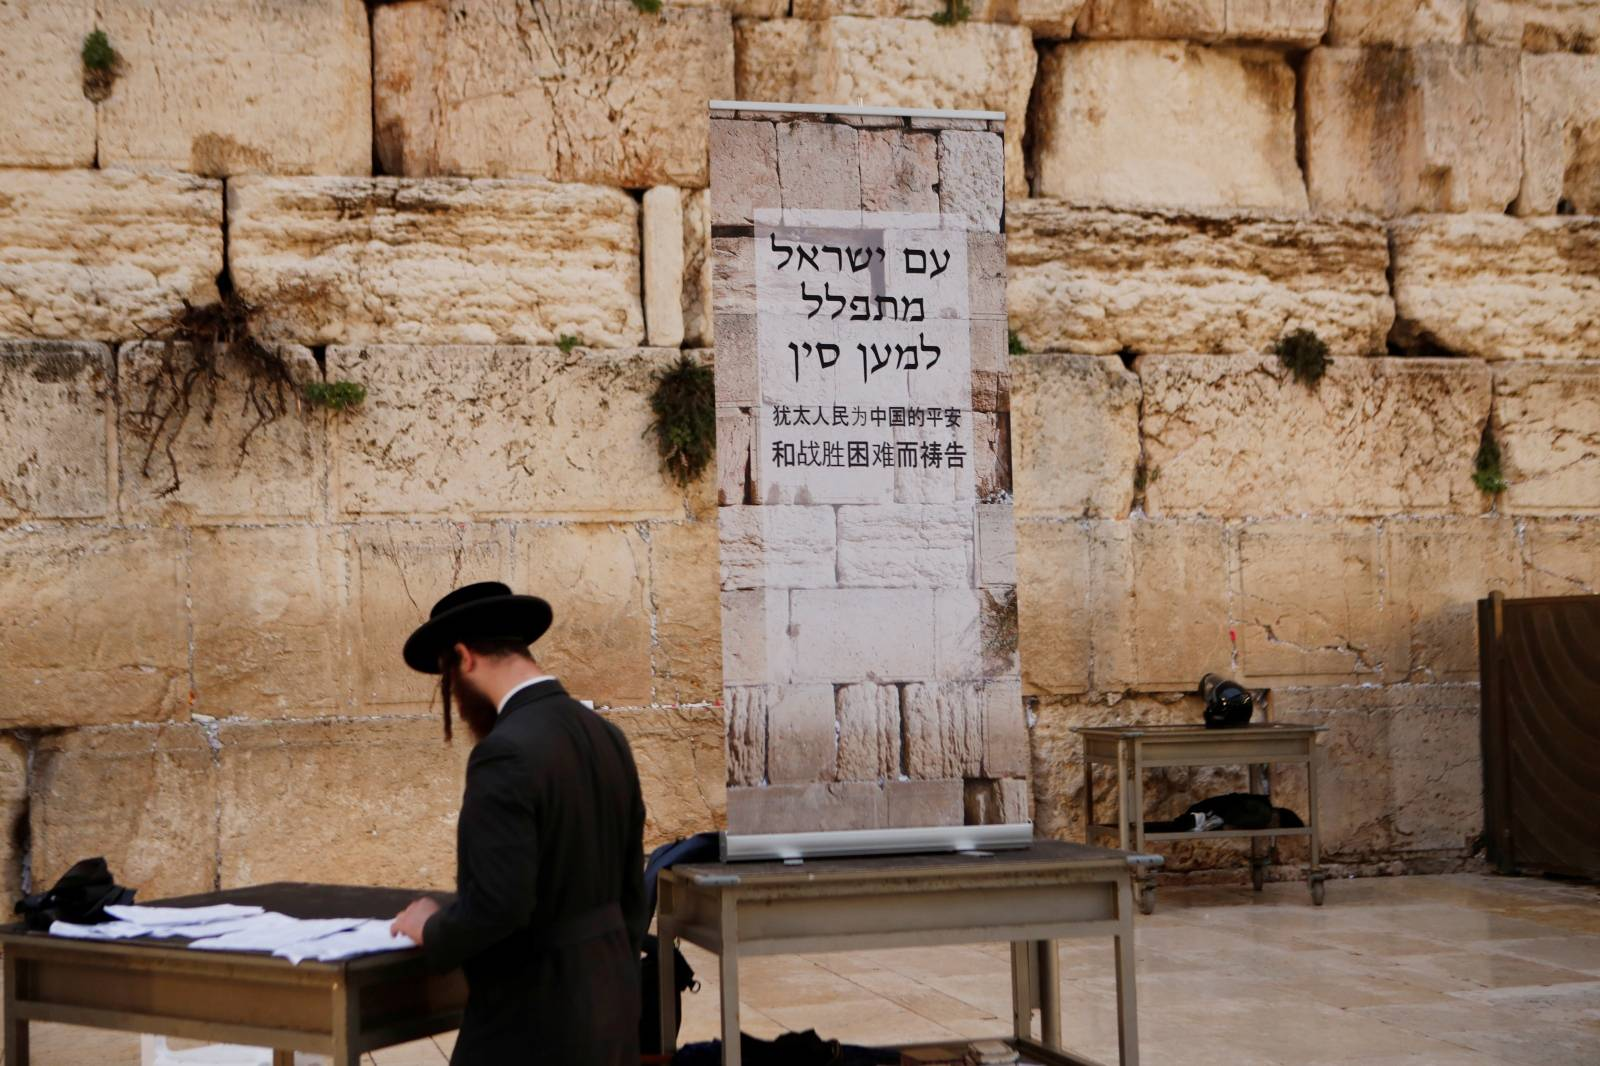 A Jewish worshipper prays next to a placard at the Western Wall in Jerusalem's Old City